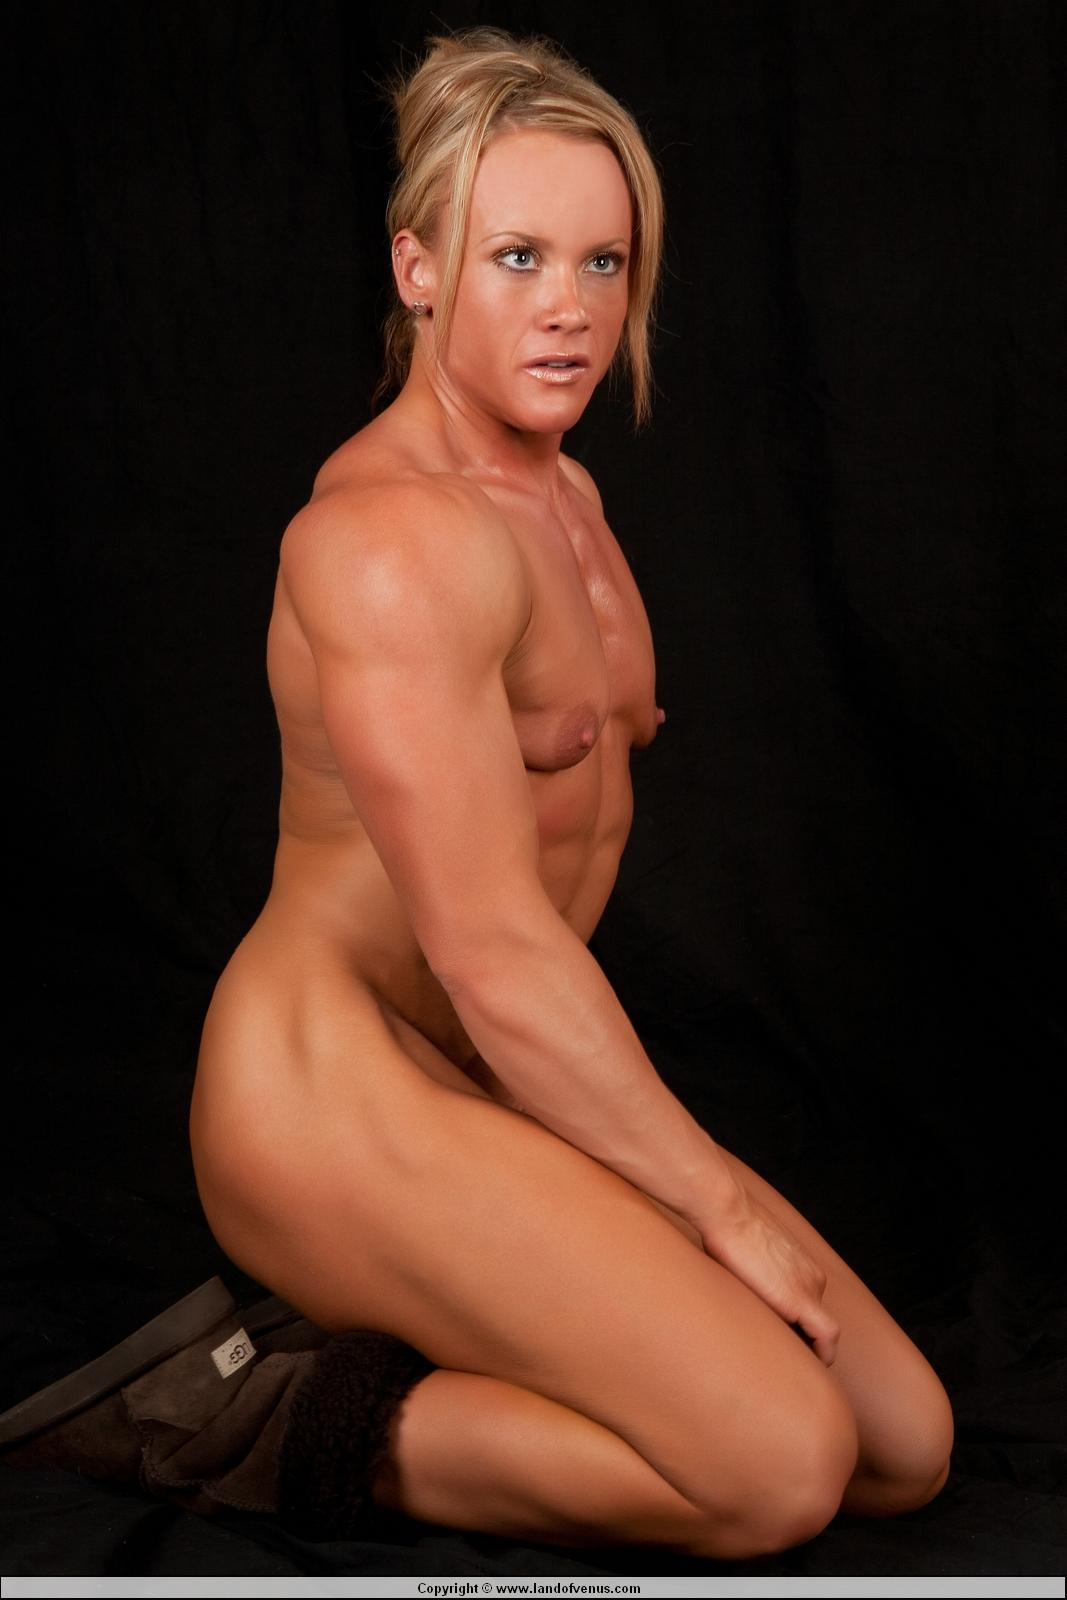 Nude women with muscles | XXX Porn Library